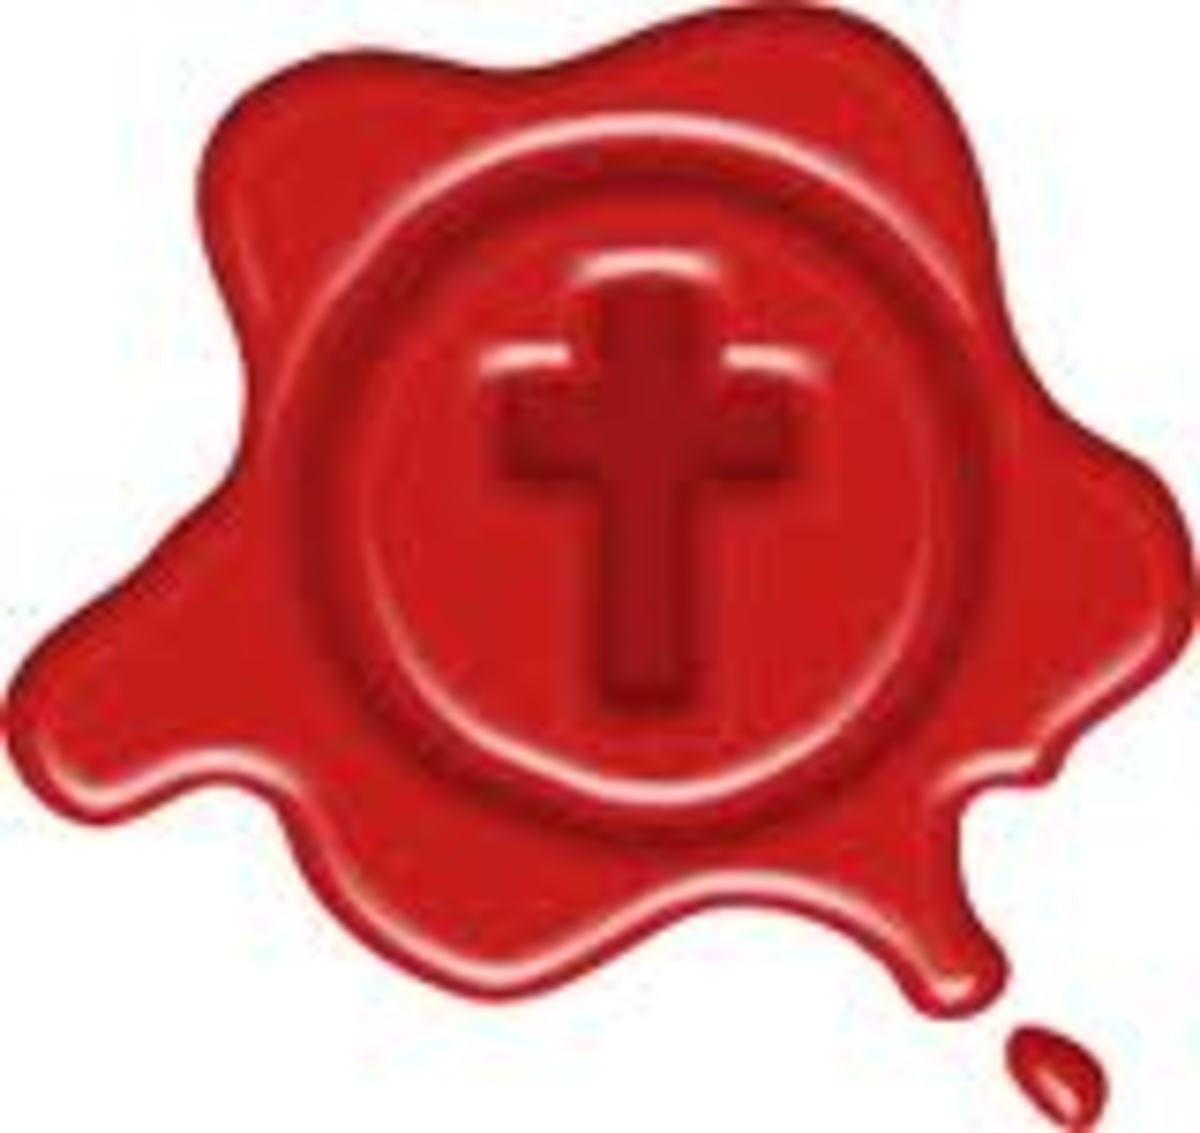 The blood of Jesus seal